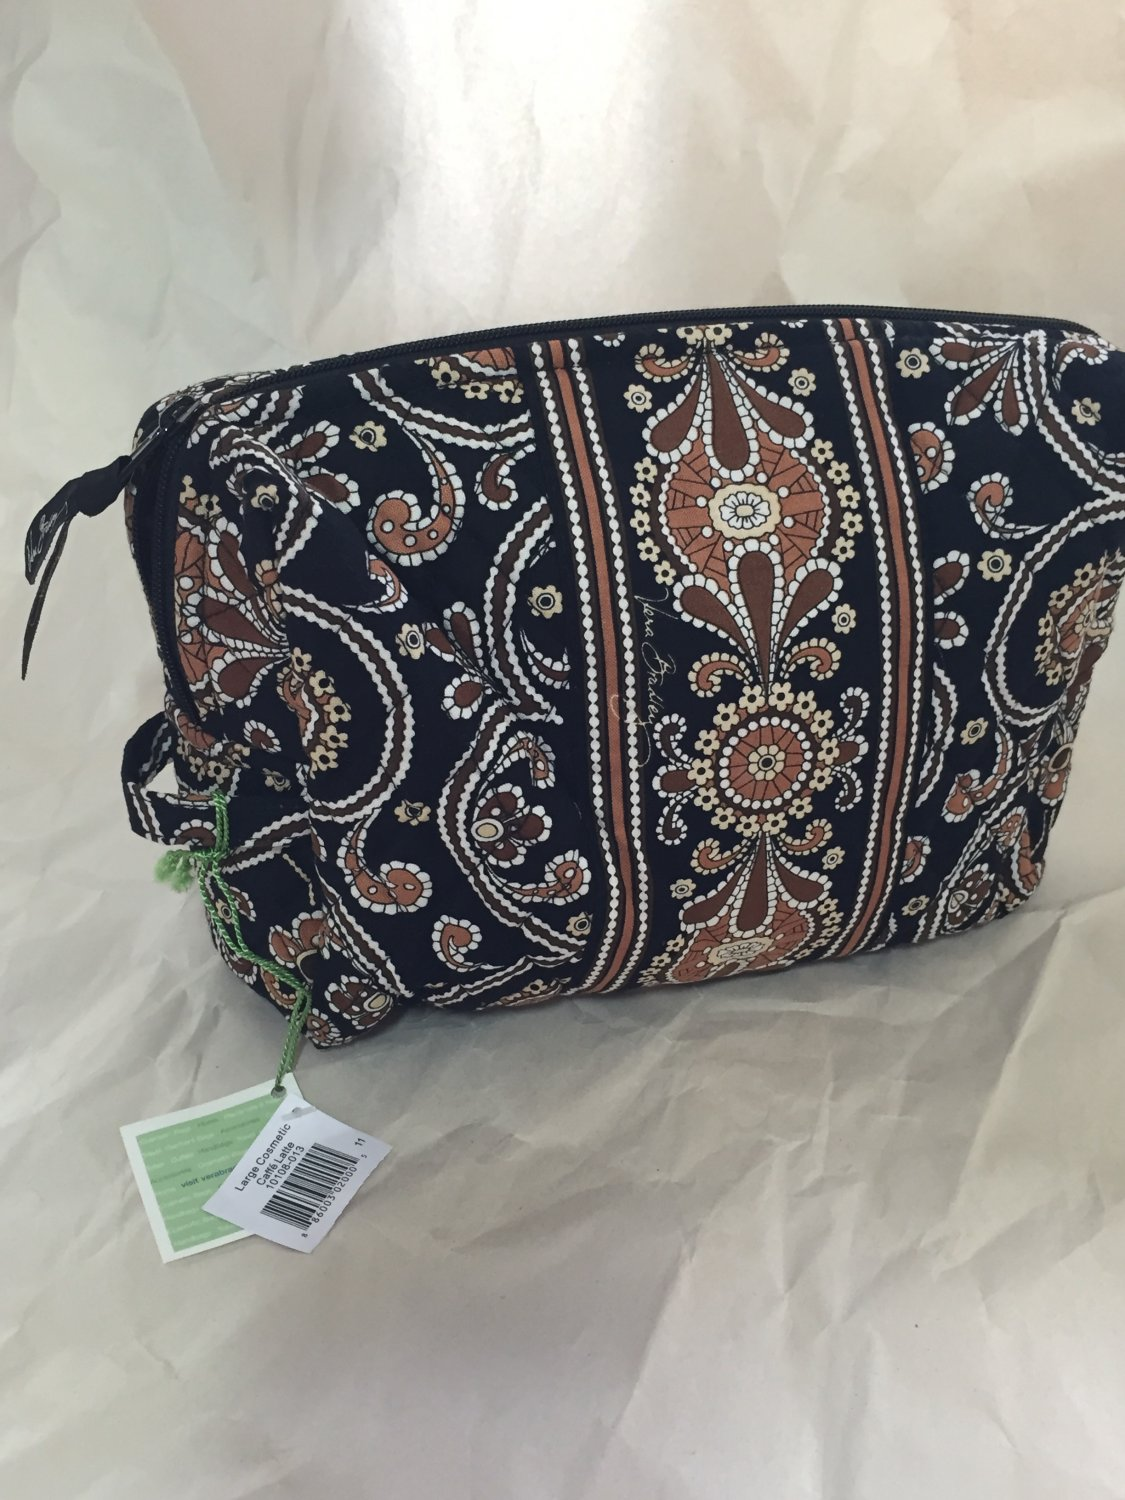 Vera Bradley Large Cosmetic Caffe Latte Retired travel cosmetic tote makeup case NWT